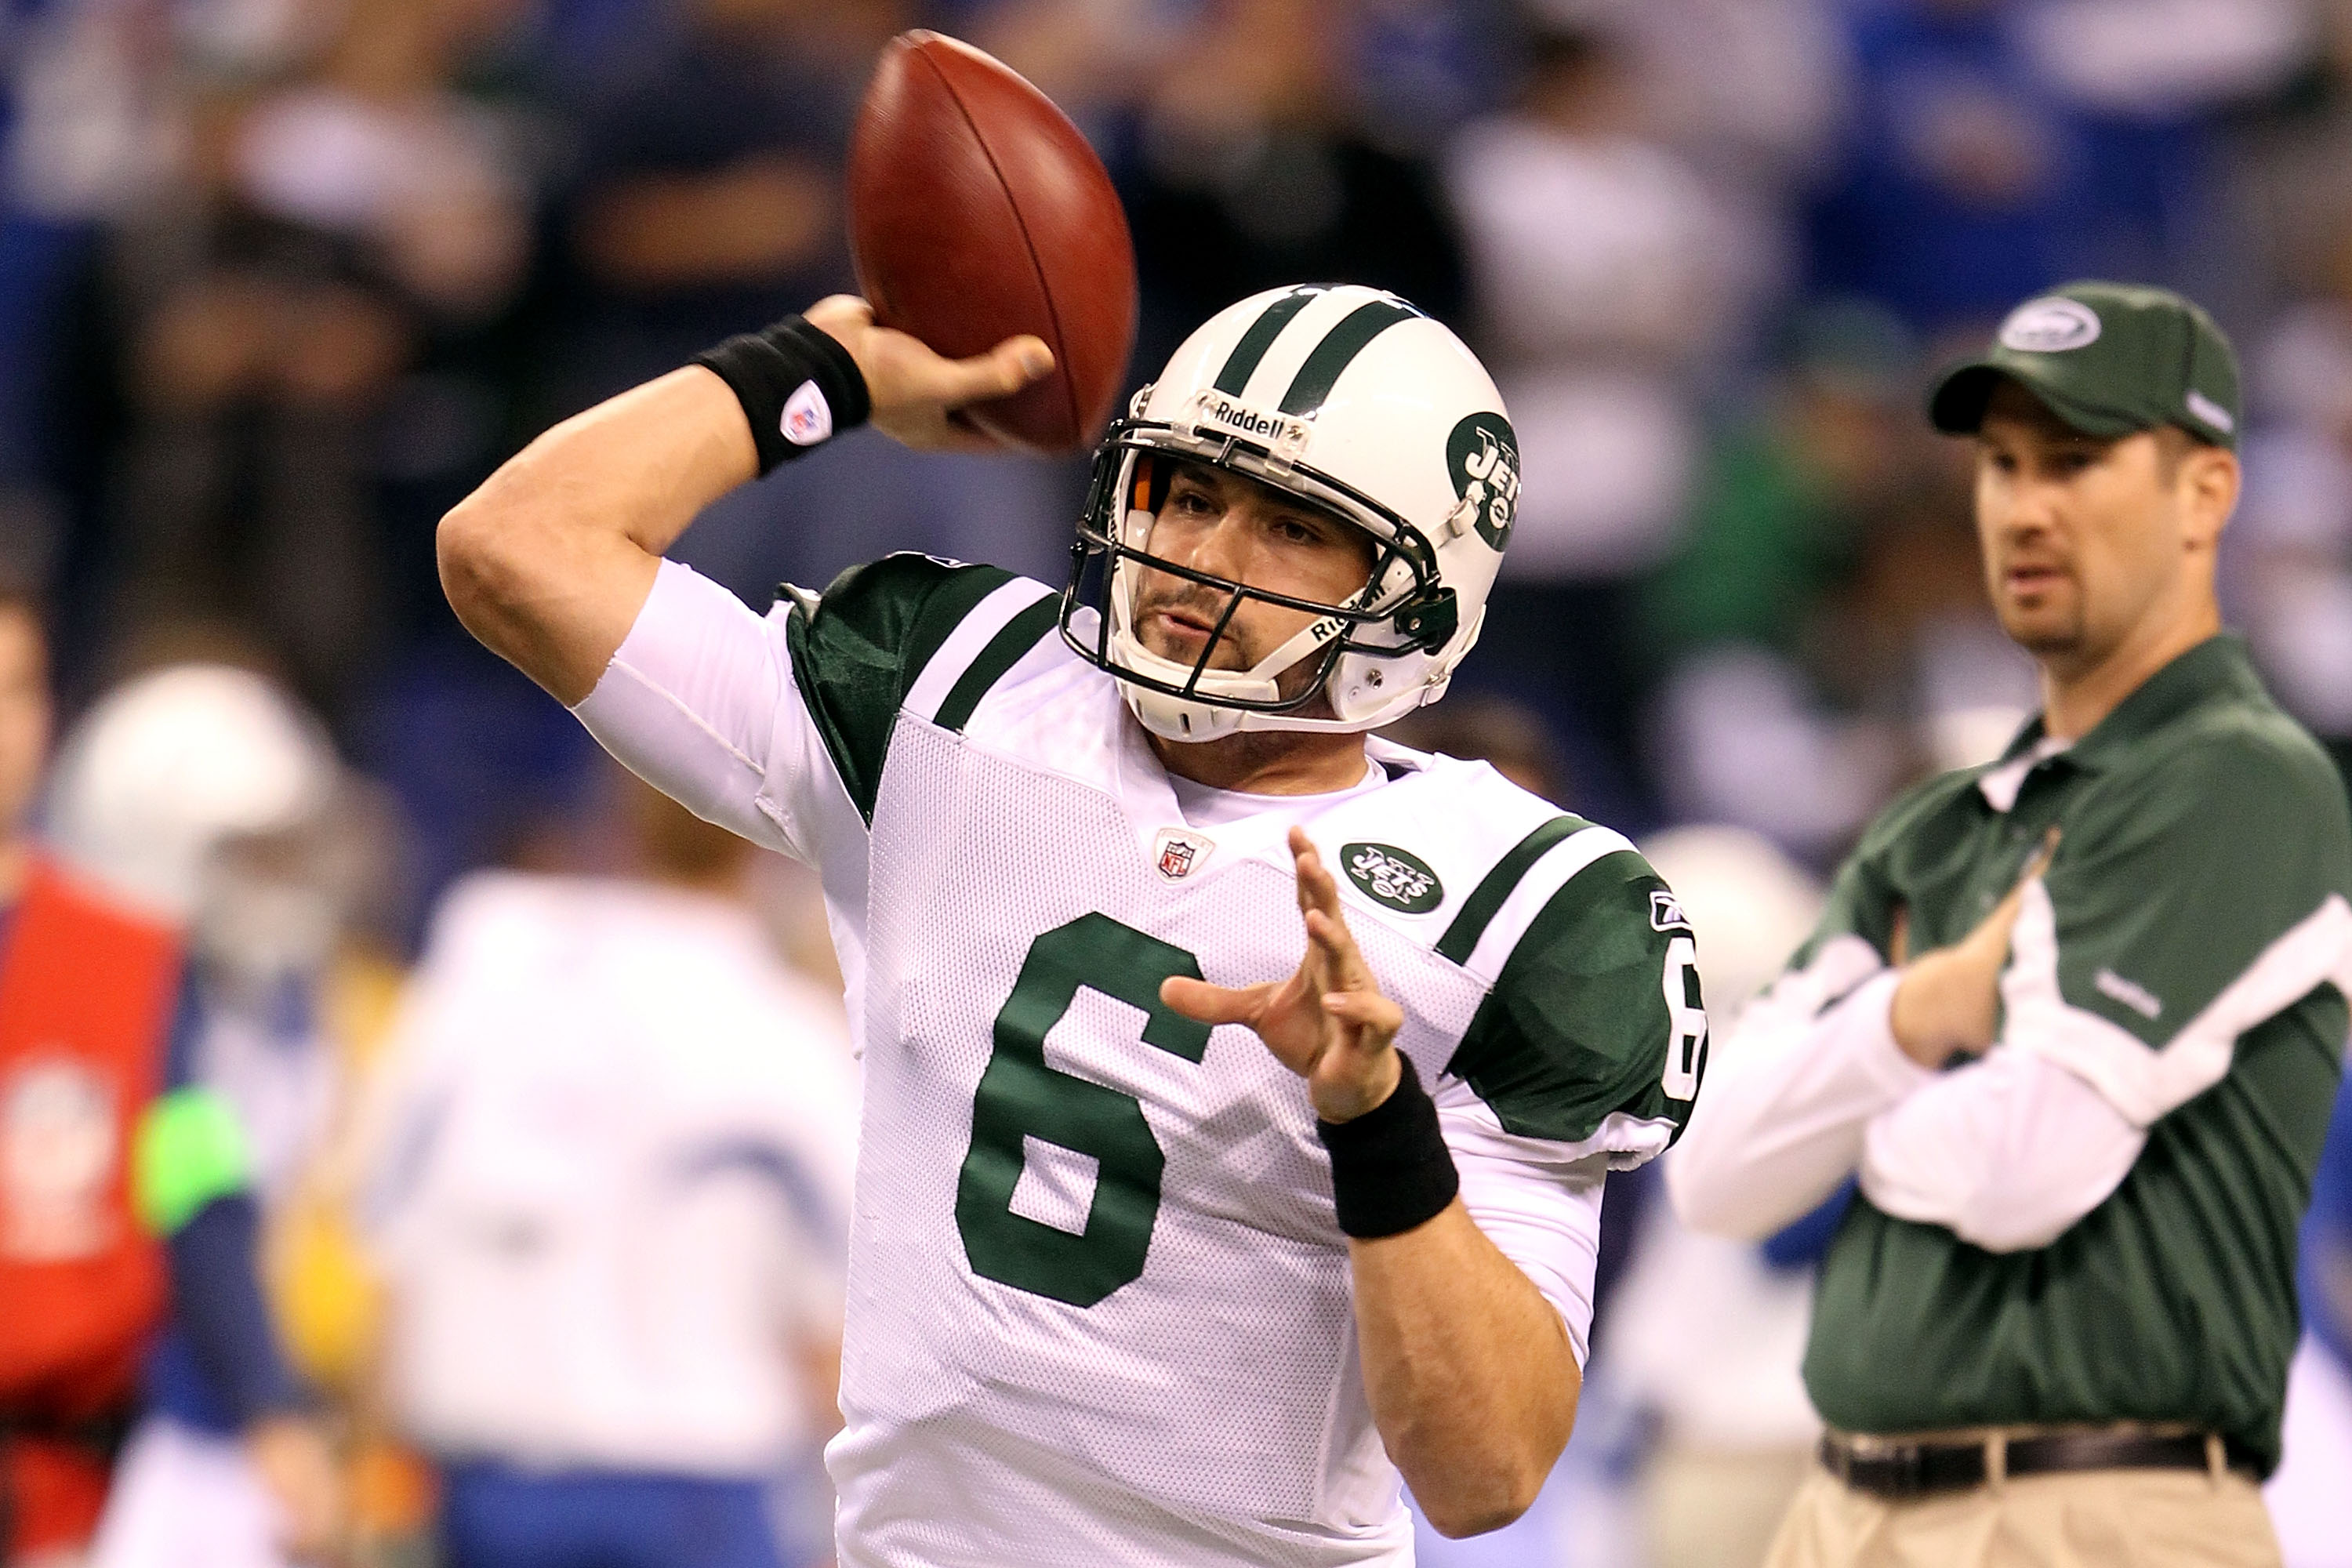 INDIANAPOLIS, IN - JANUARY 08:  Quarterback Mark Sanchez #6 of the New York Jets warms up as offensive coordinator Brian Schottenheimer looks on against the Indianapolis Colts during their 2011 AFC wild card playoff game at Lucas Oil Stadium on January 8,